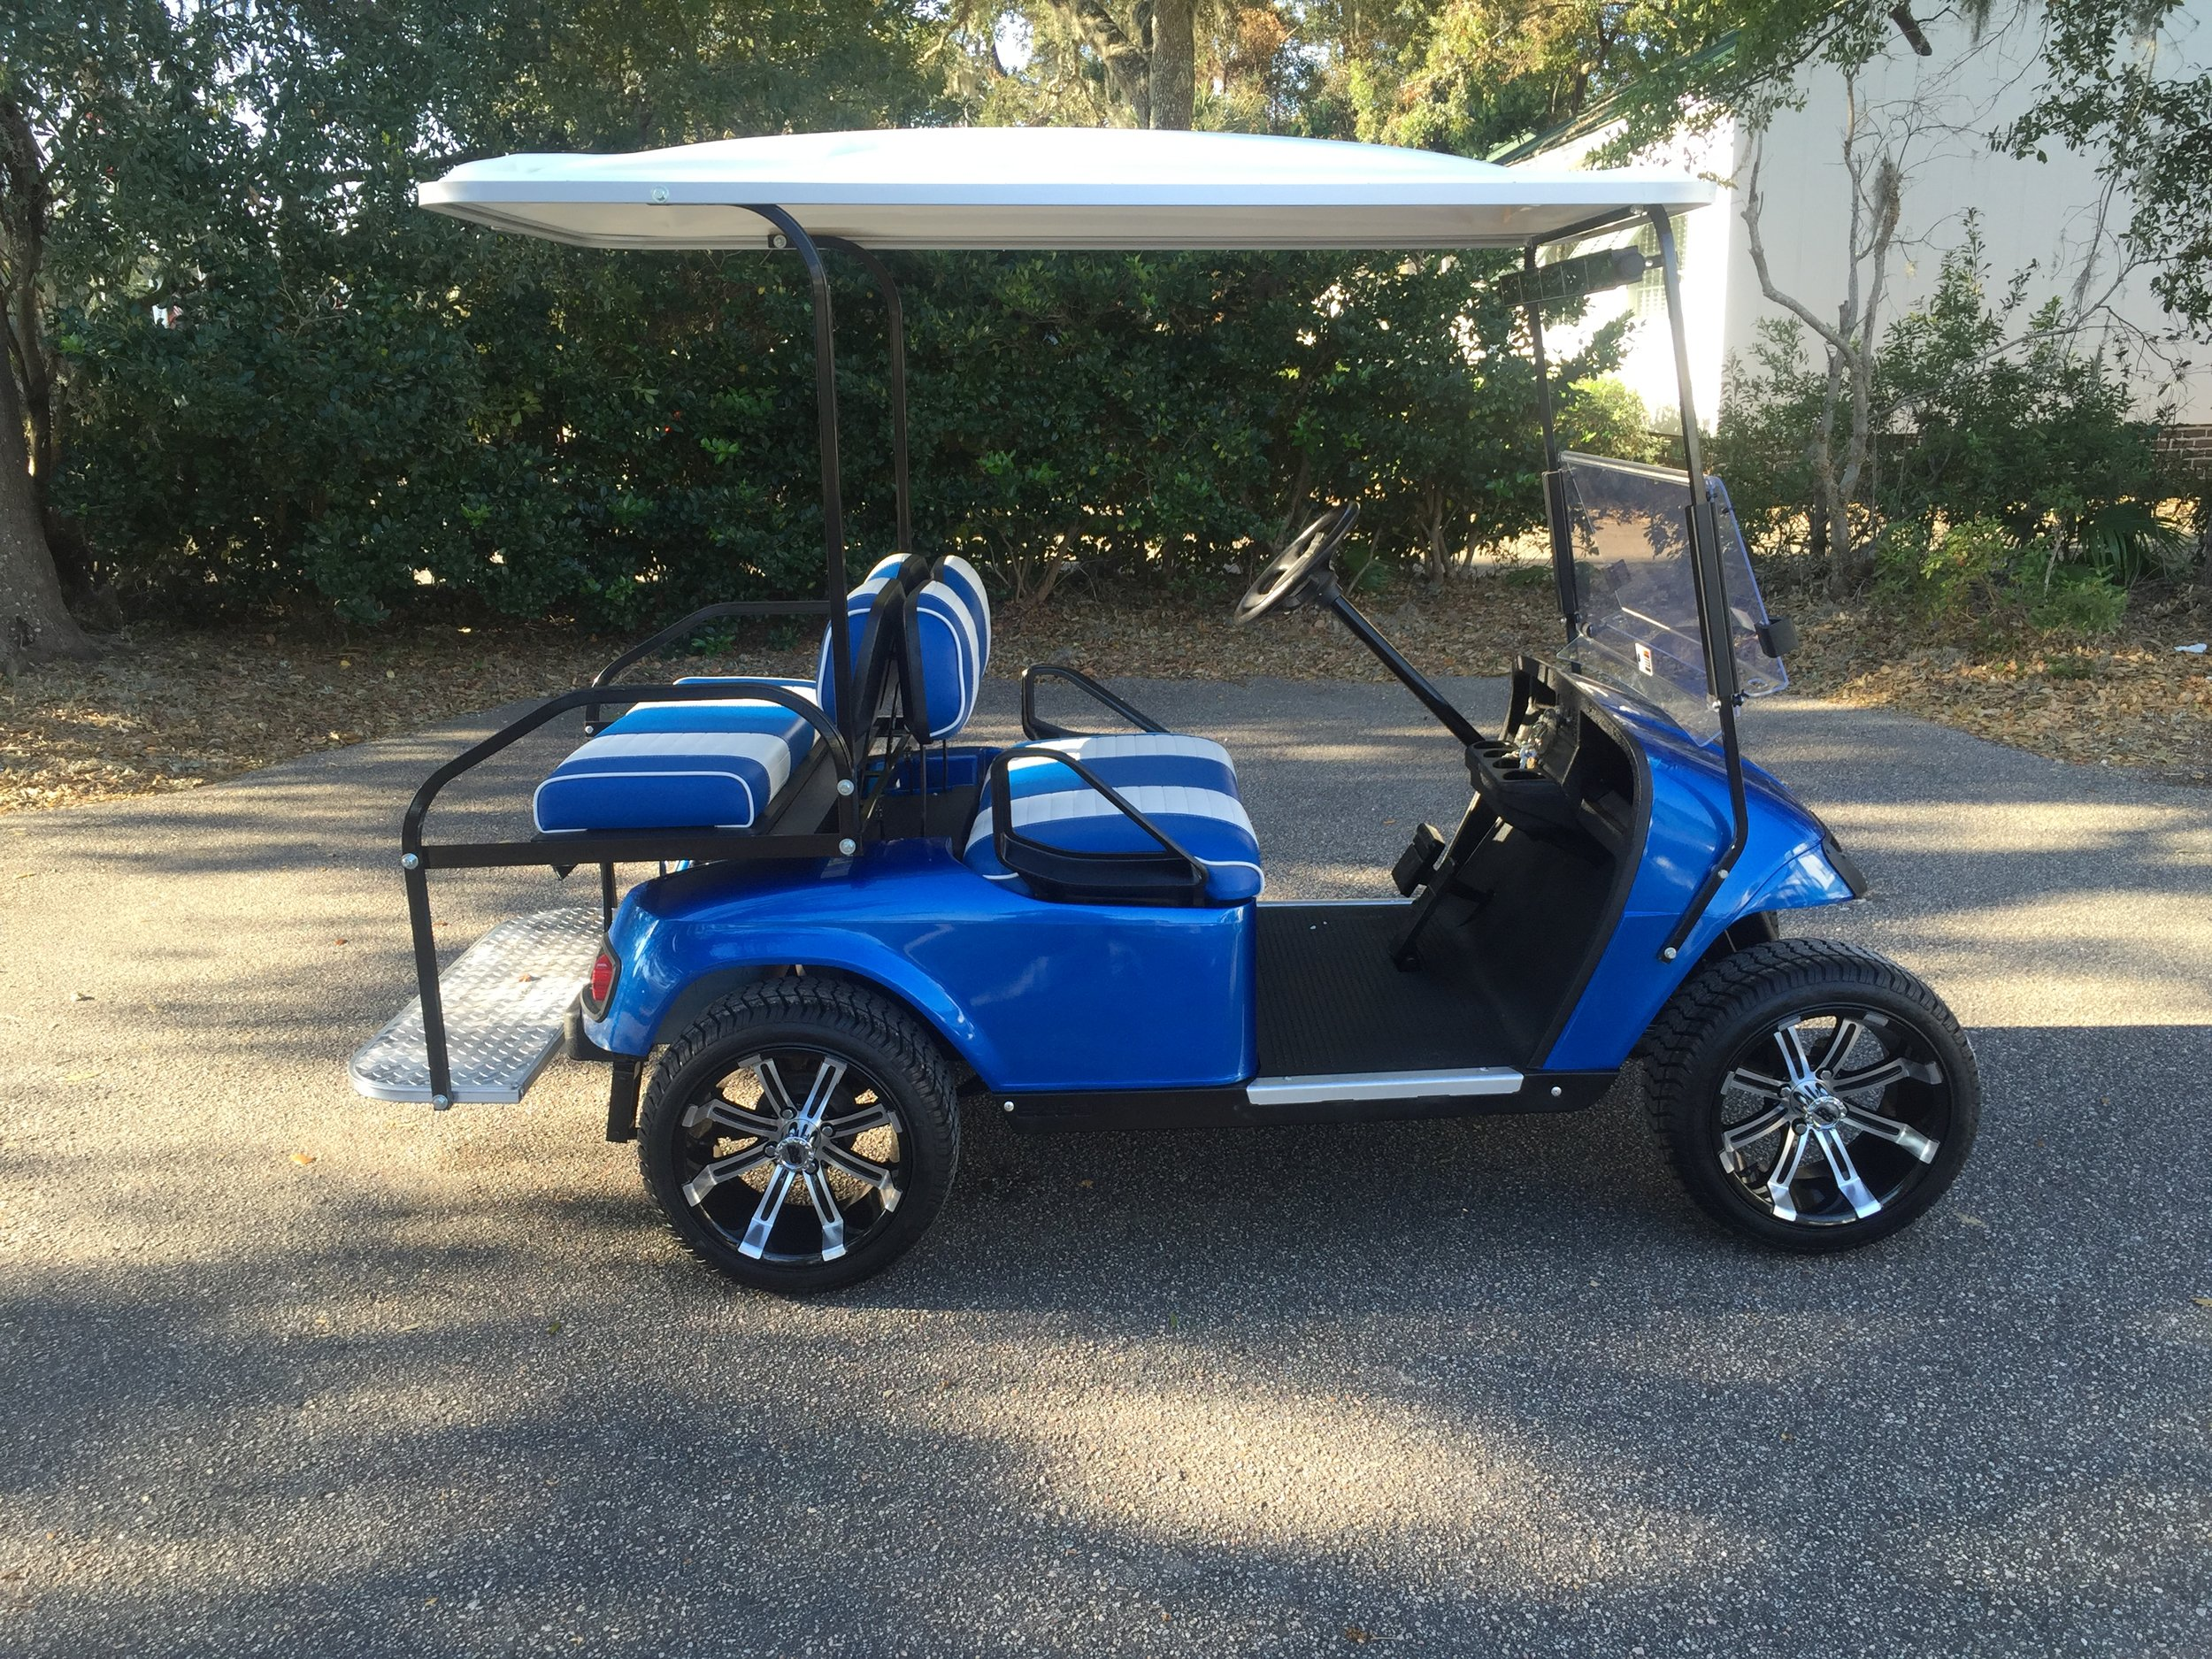 2015 Viper Blue EZGO Cart —————  Blue/white seats, white extended top, new 2019 batteries (6-8vt), high speed code, LED lights, Low Pro tires, mirror and flip windshield